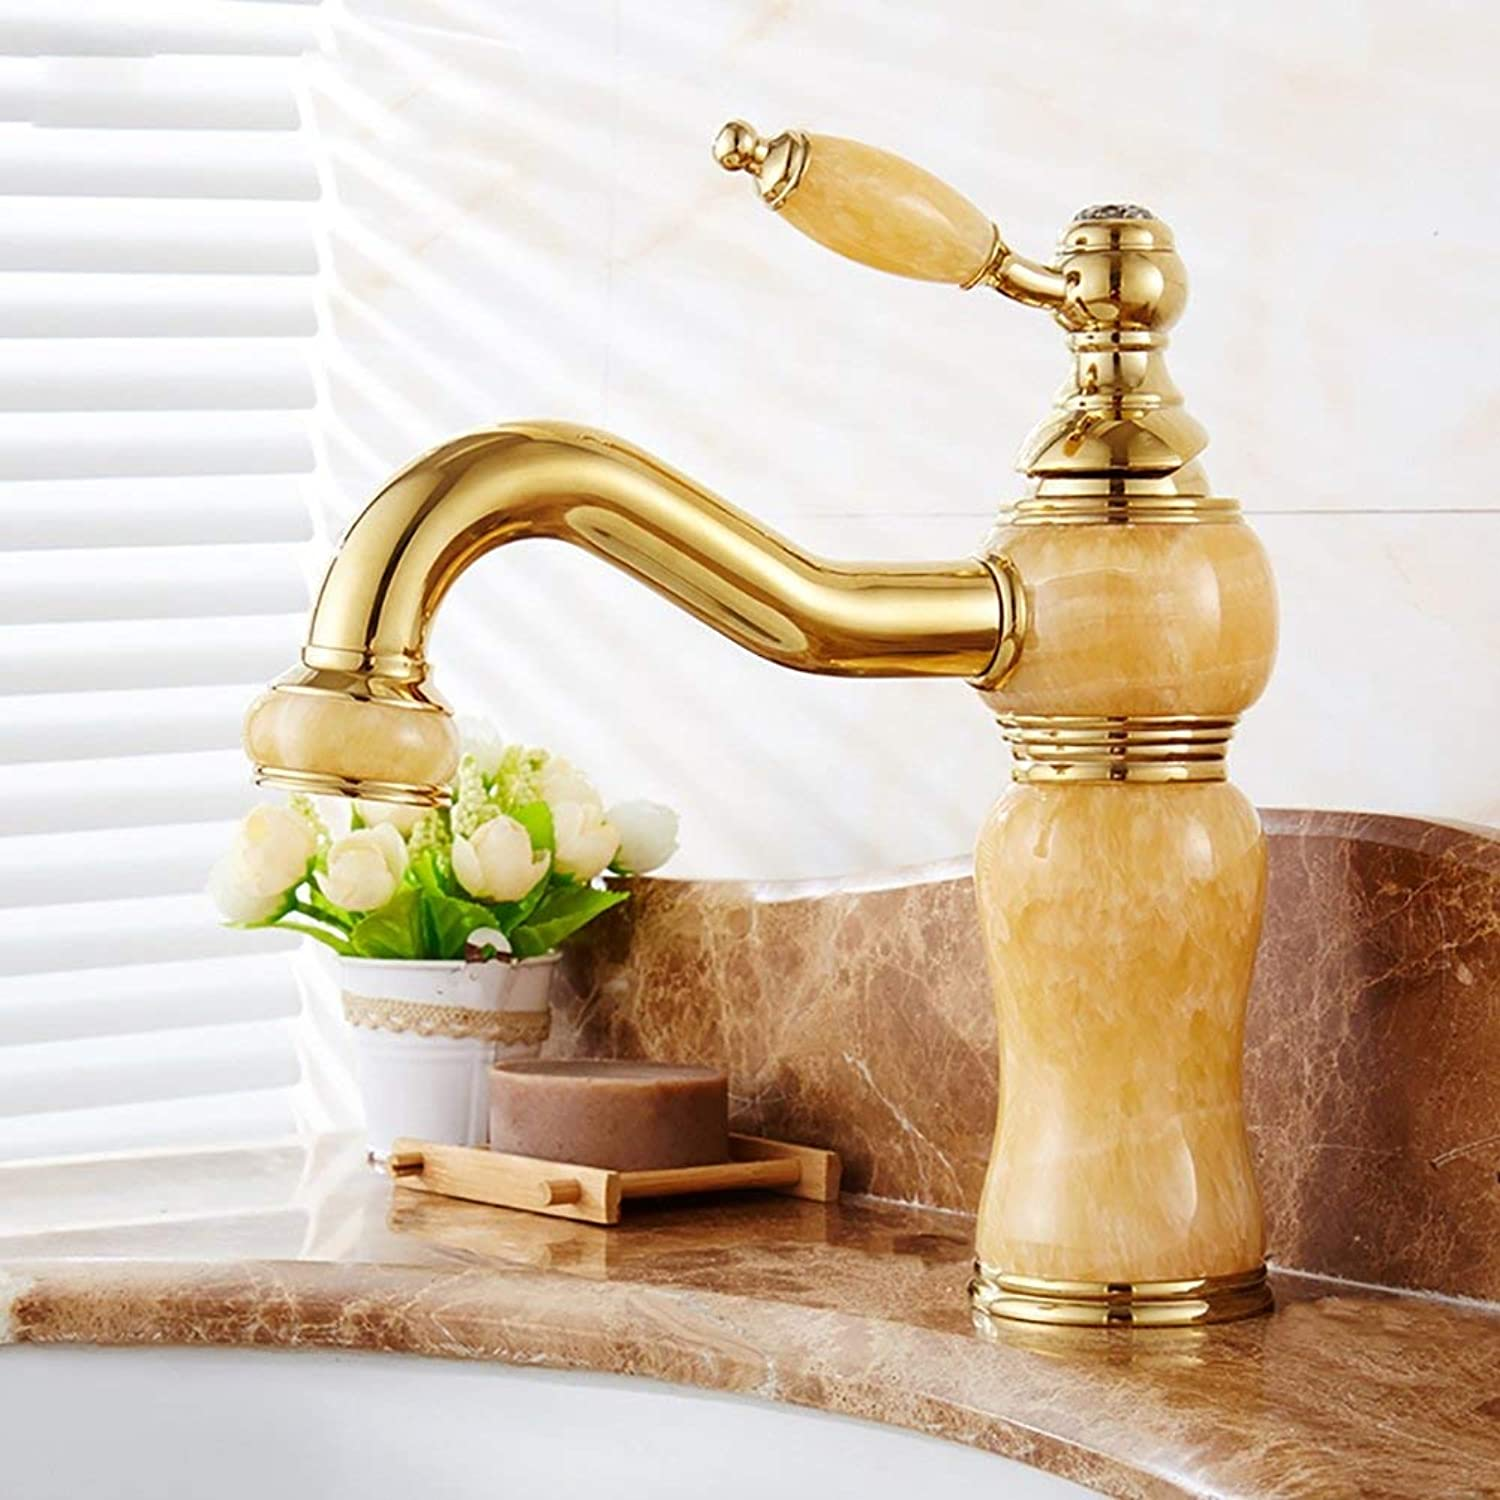 JZX All-Copper European Split Faucet, Basin Faucet, Hot and Cold Washbasin Faucet,C,